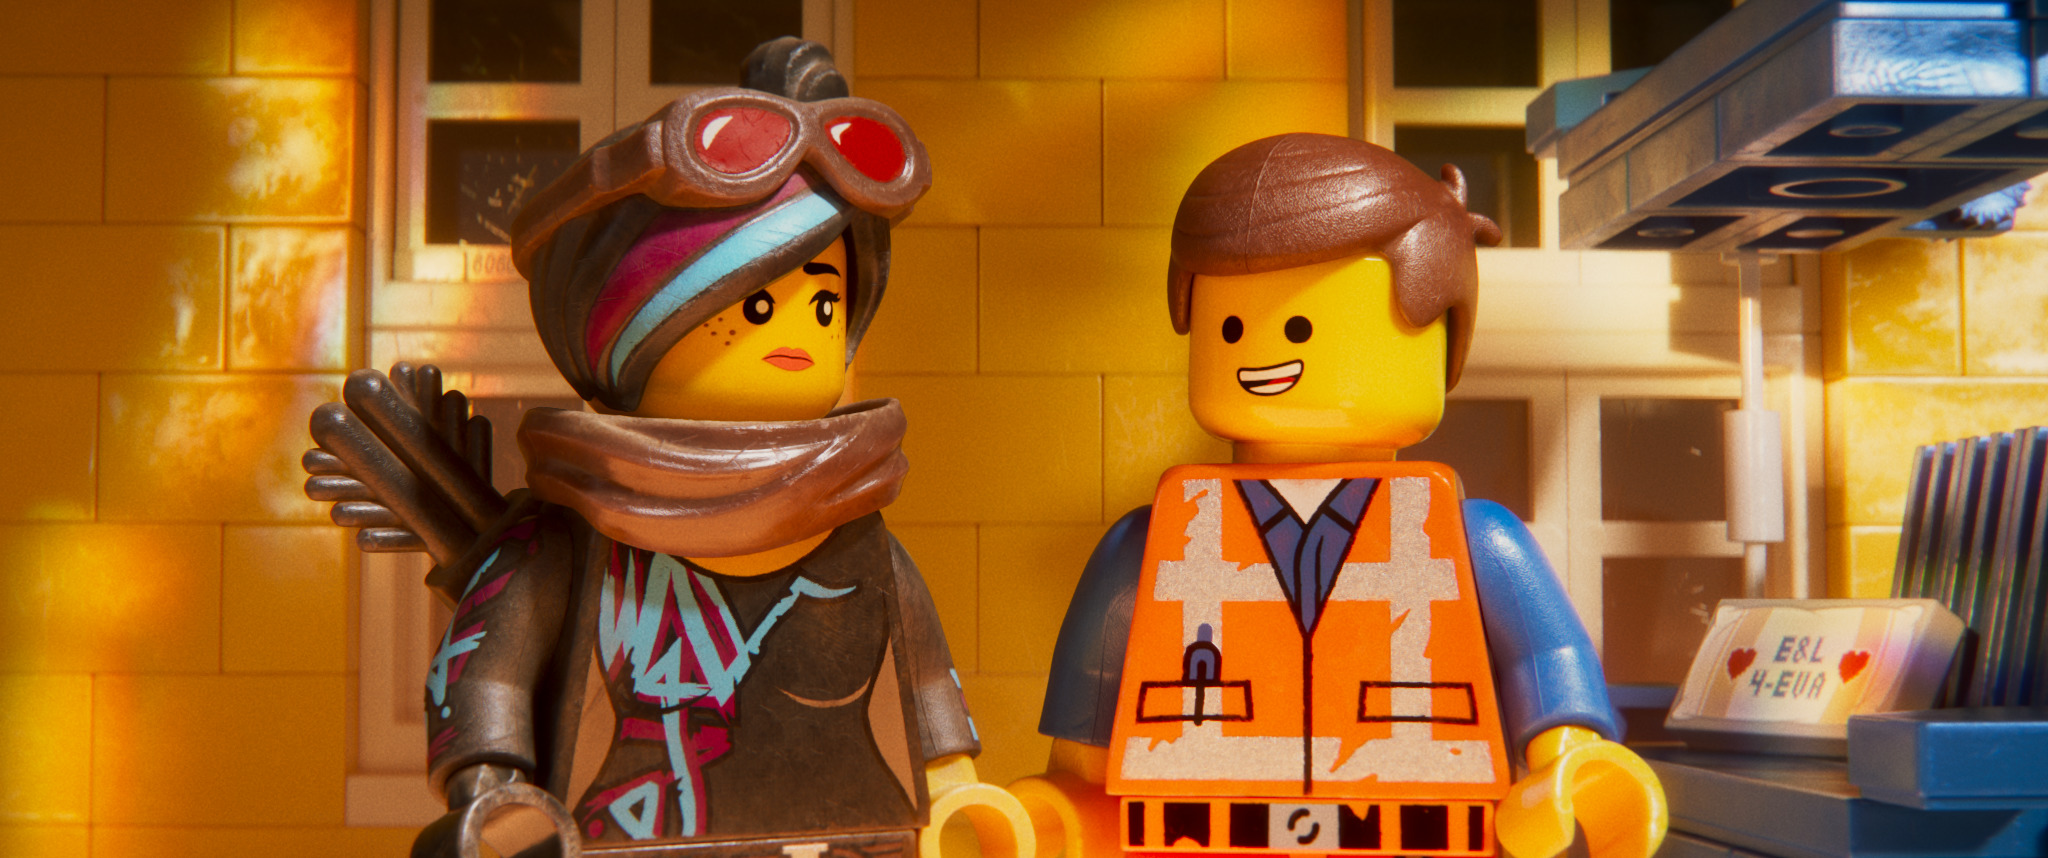 'Lego Movie' Sequel Assembles Adequately